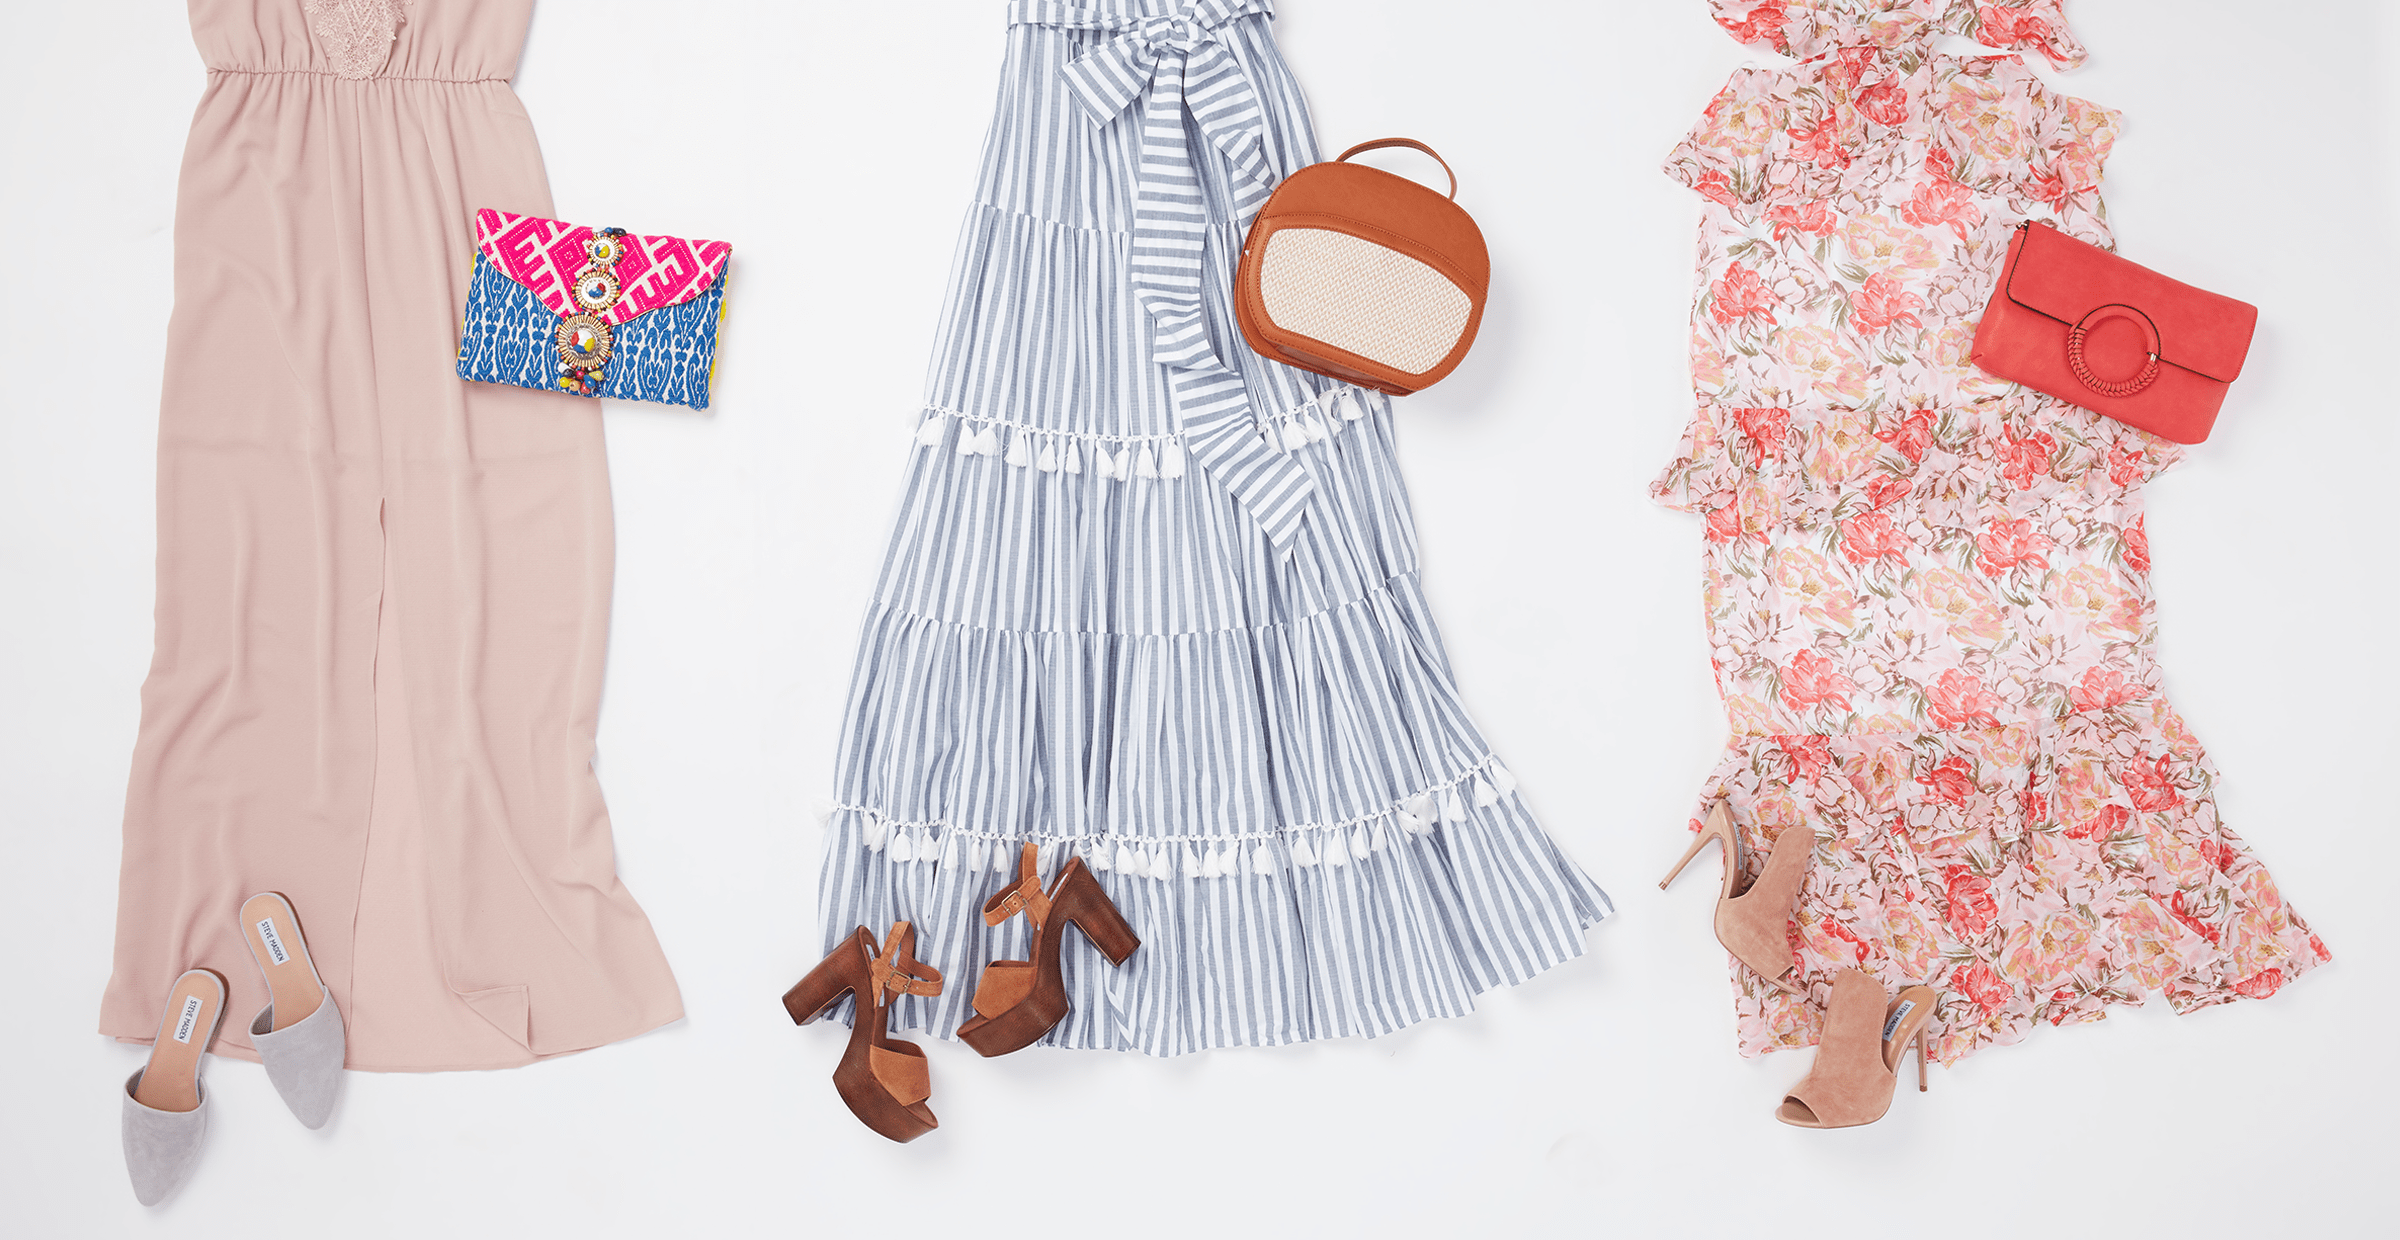 Summer's Most Swoon-Worthy Maxi Dresses